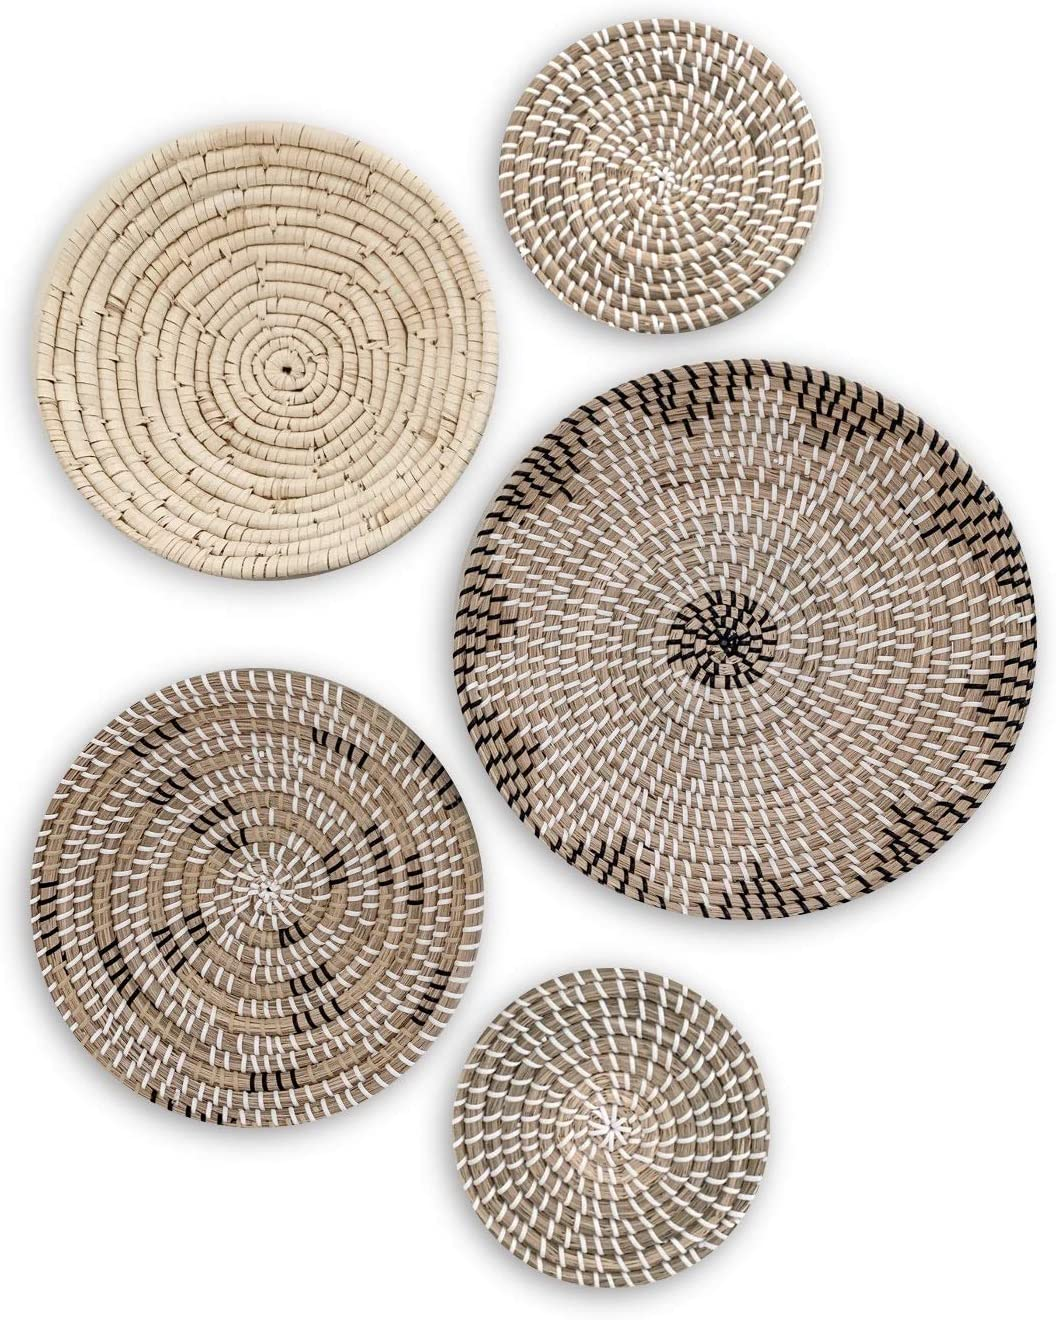 TheNamiCollection Woven Wall Basket Set - Five Hanging Seagrass Baskets | Decorative, Boho Styled Baskets Perfect For Trendy, All Natural Home Decor | Handmade, Round, Woven, Hanging Wall Basket Decor